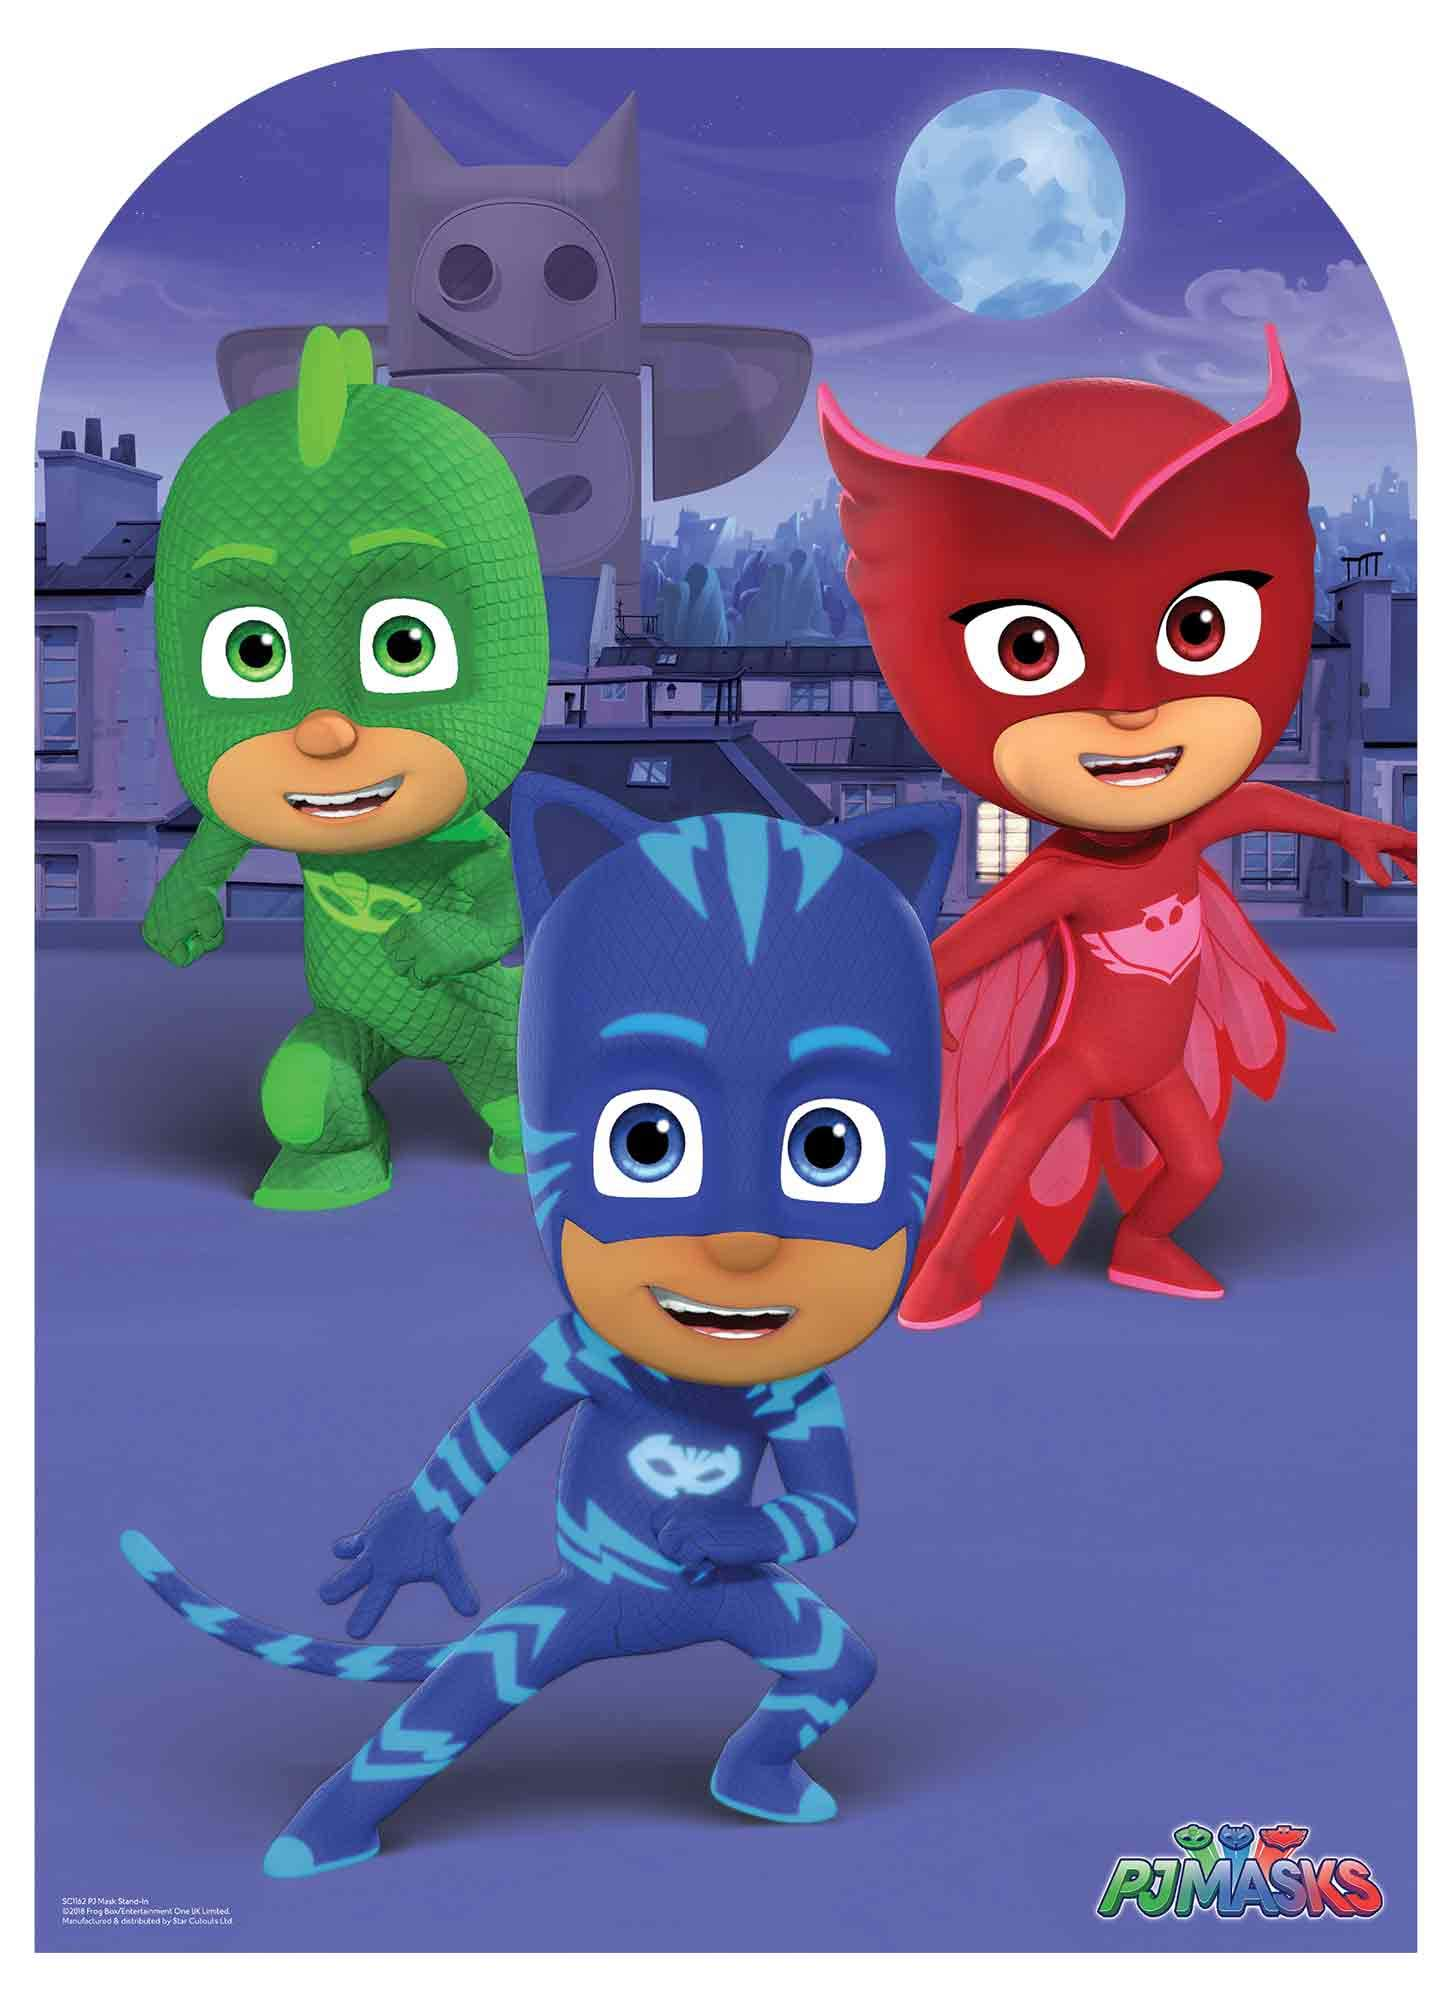 Official PJ Masks Party Child Size Stand In Includes Six Pack of PJ Masks